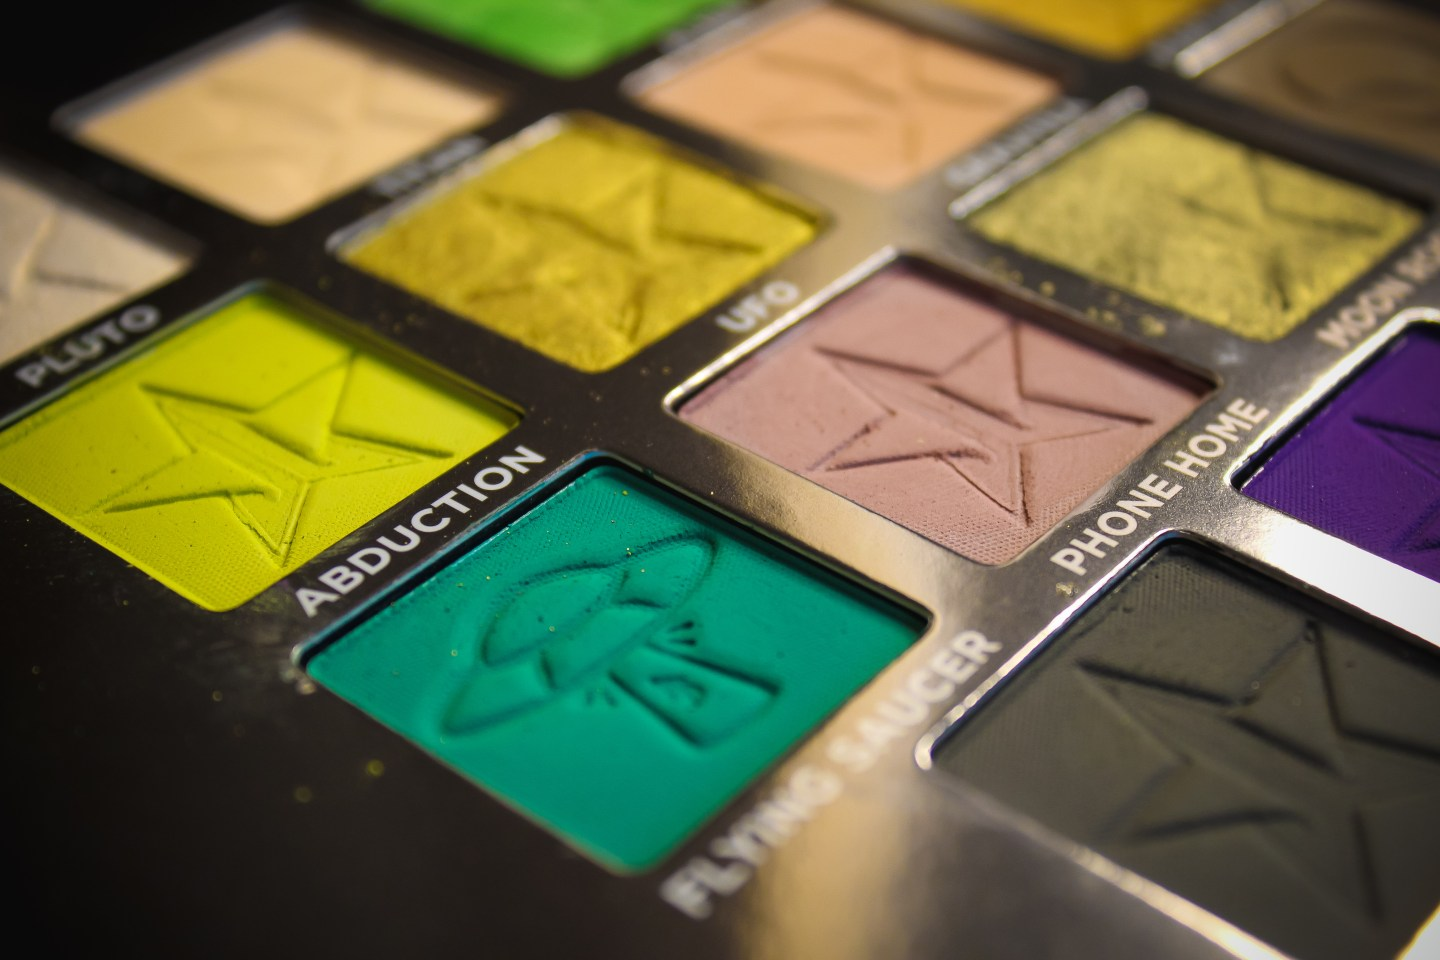 Is Jeffree Star Cosmetics Alien Palette Worth the Hype? 5